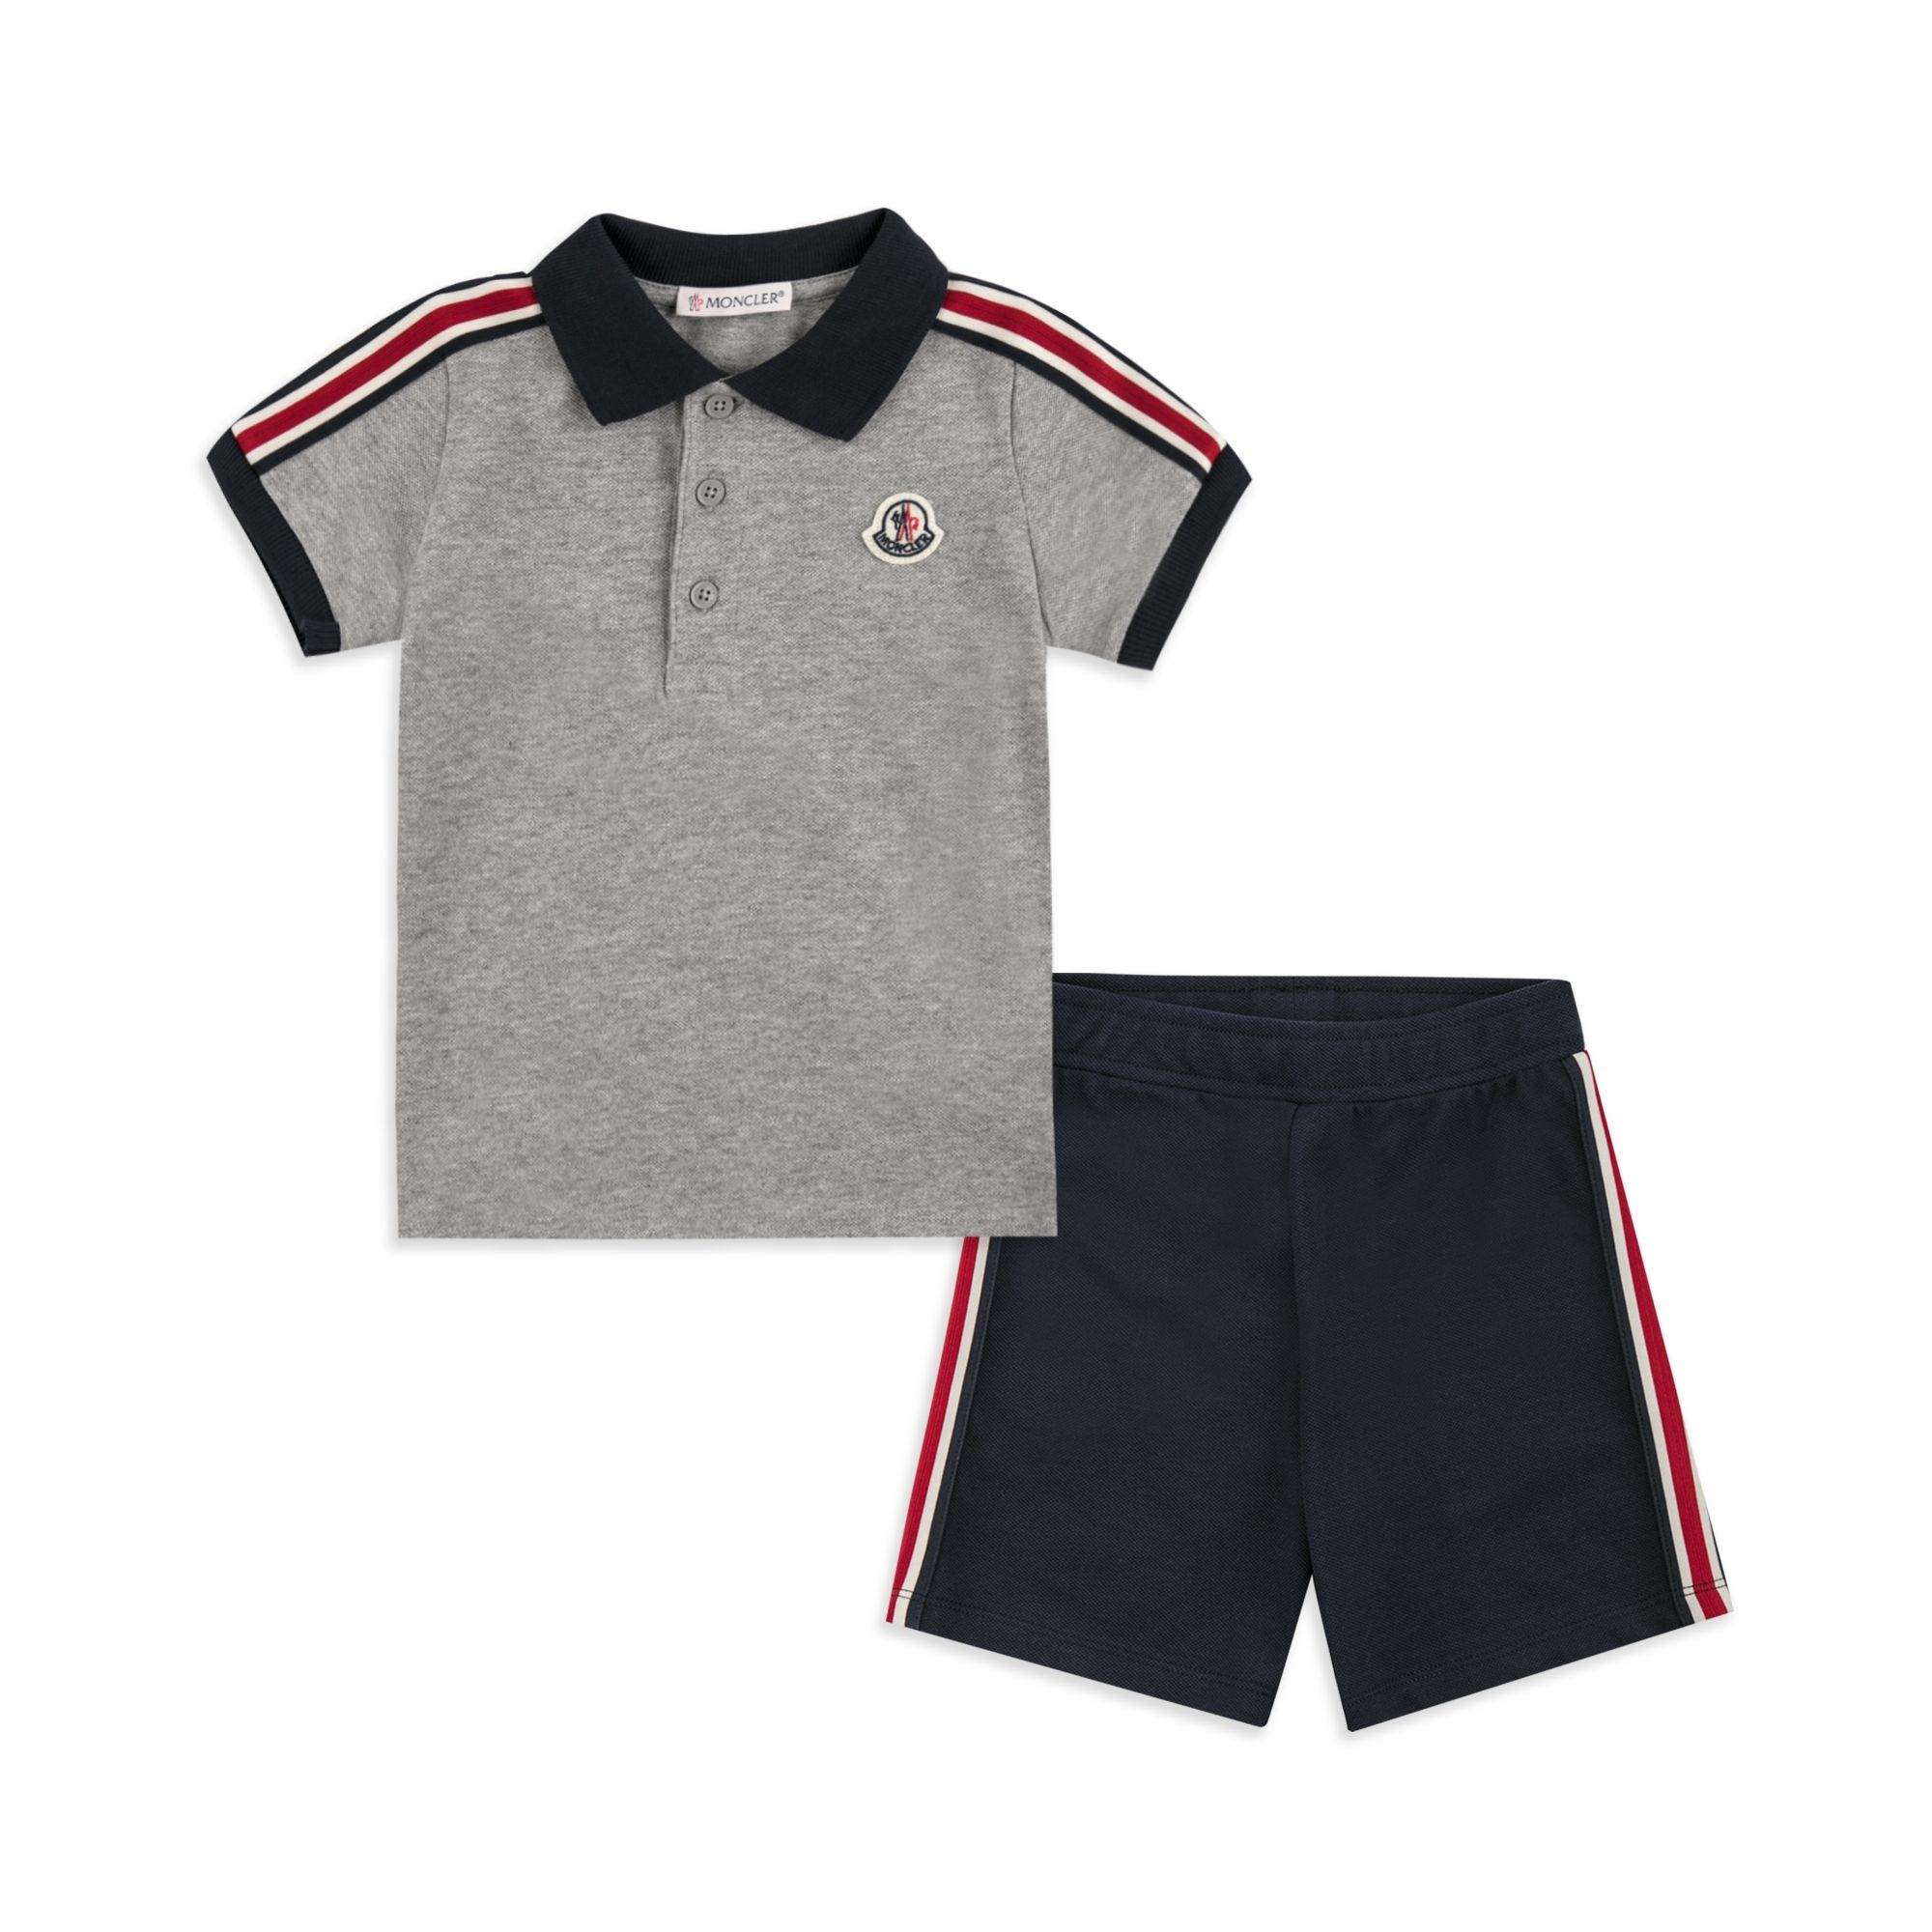 2d4bffc6b Baby Boys Striped Polo Outfit Set - Grey by Moncler | Baby Outfits ...